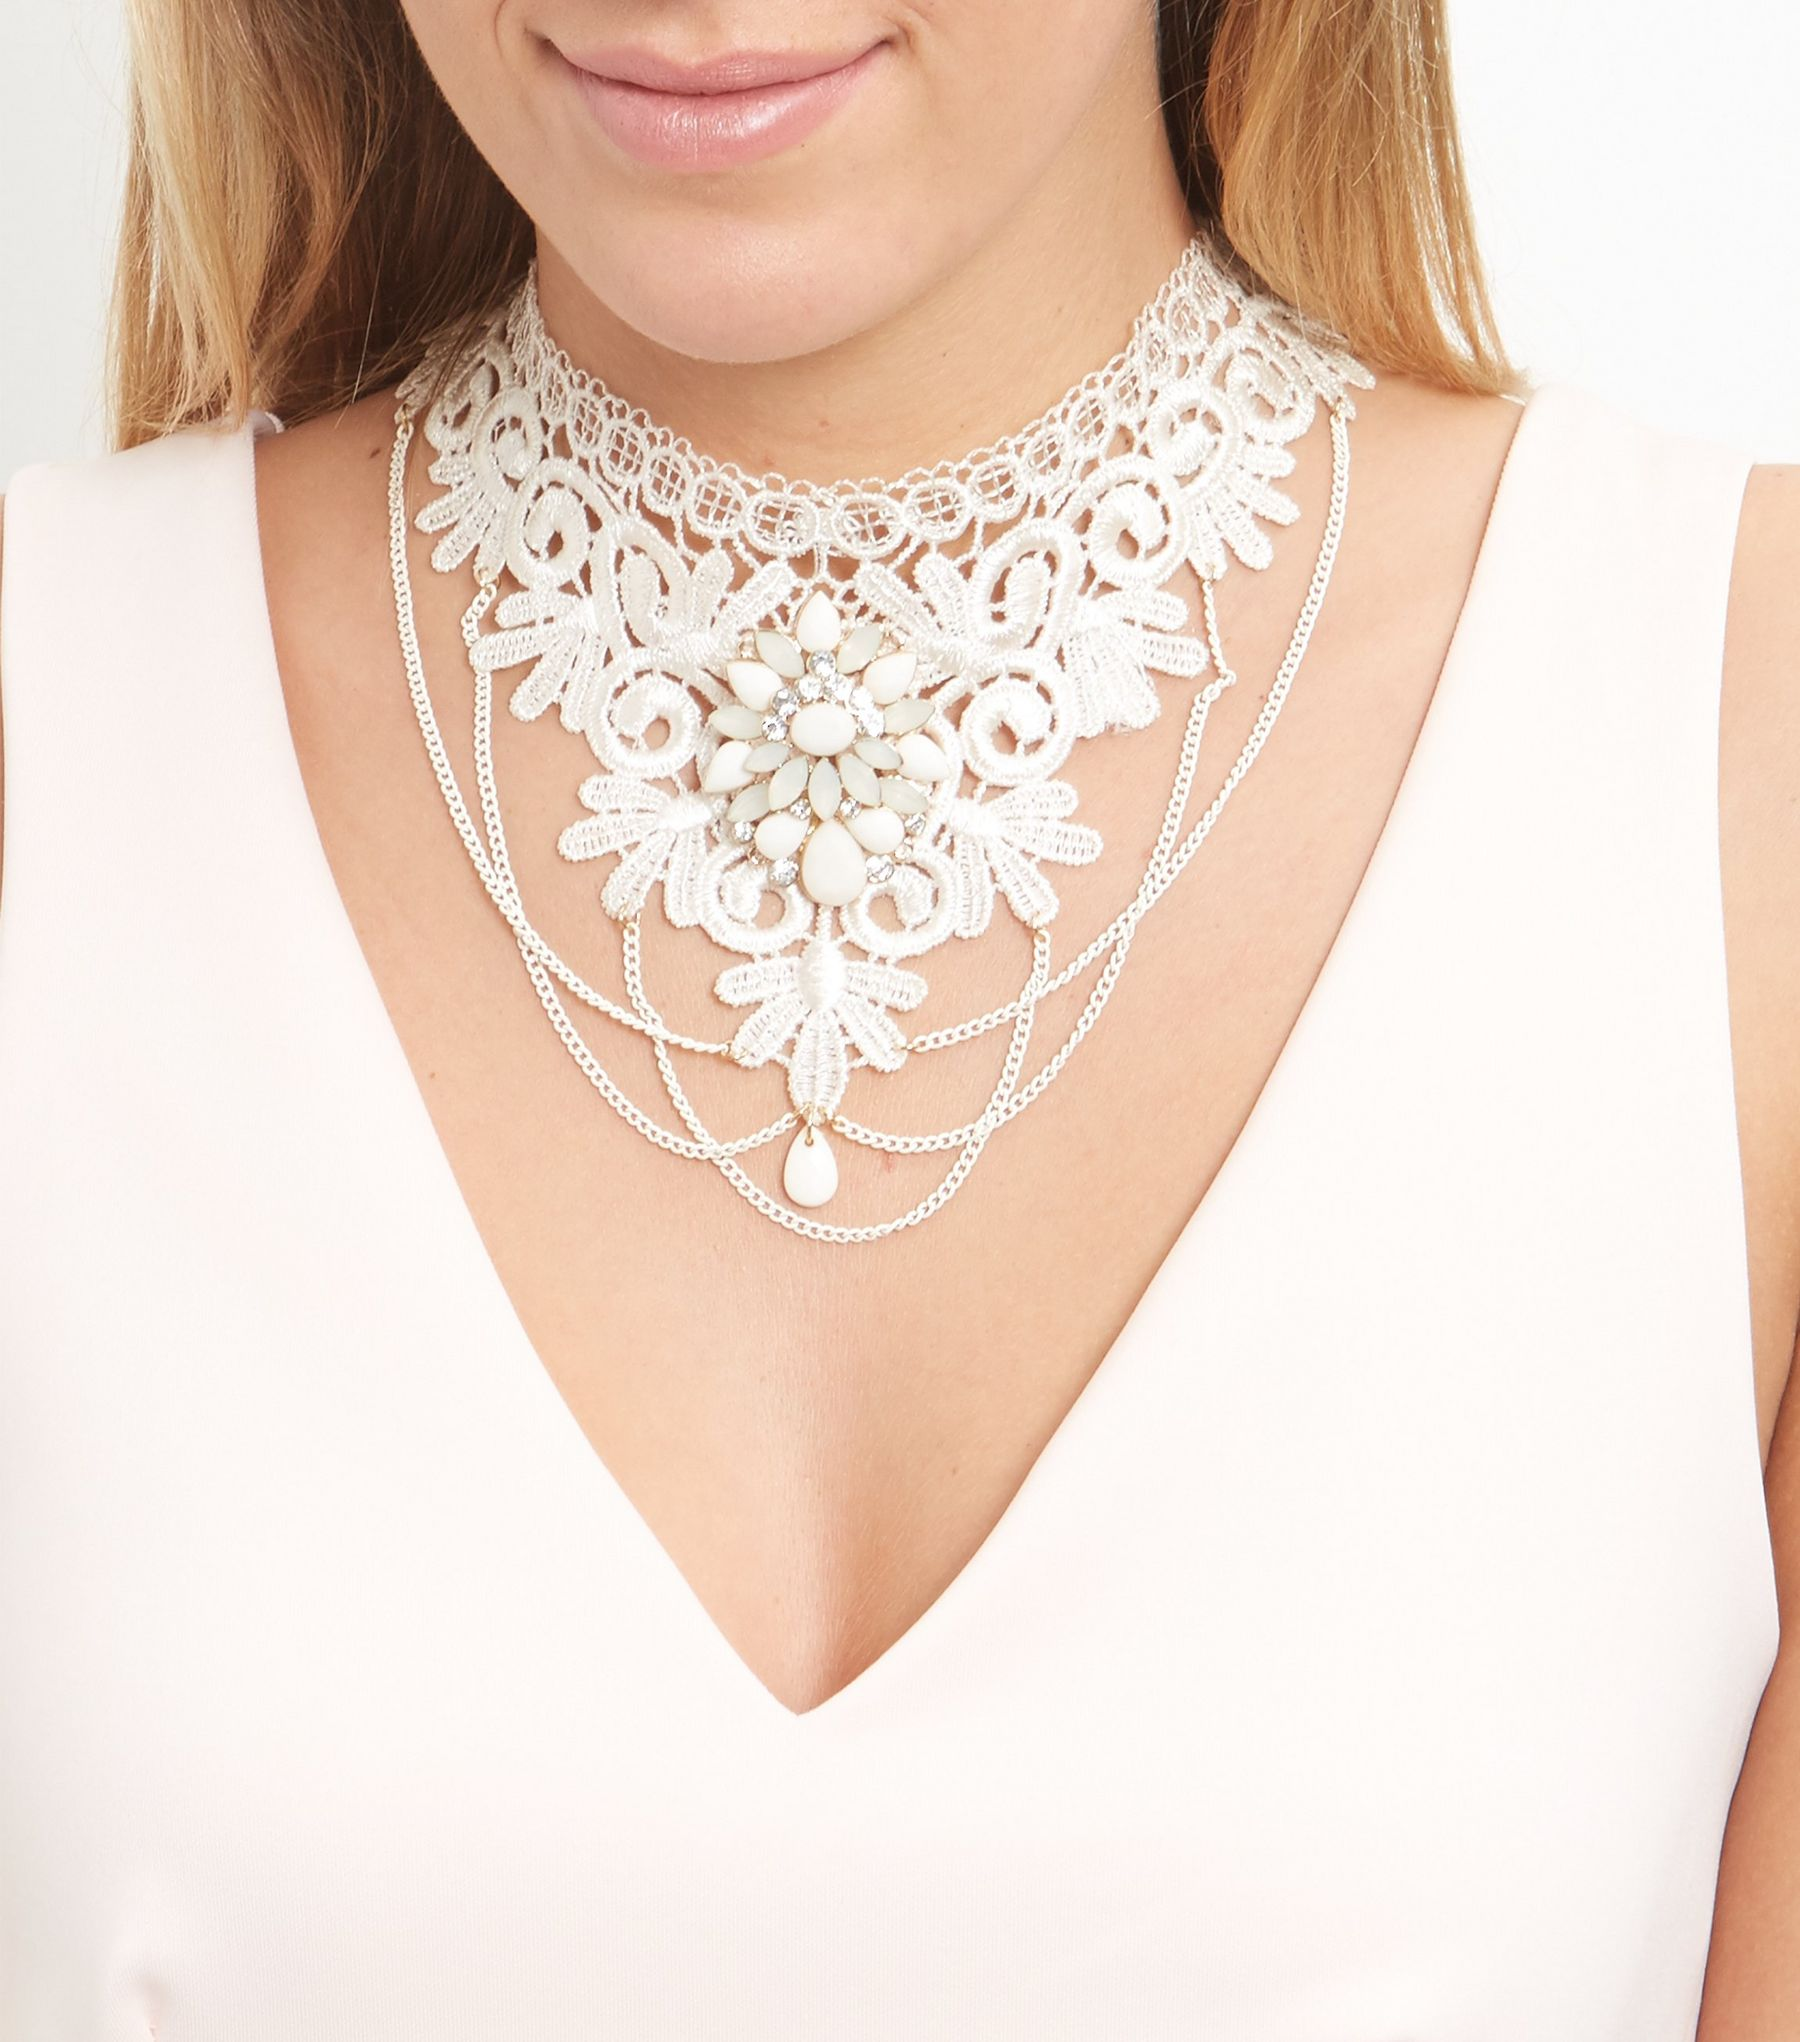 Collier plastron en dentelle beige orné de pierreries | New Look